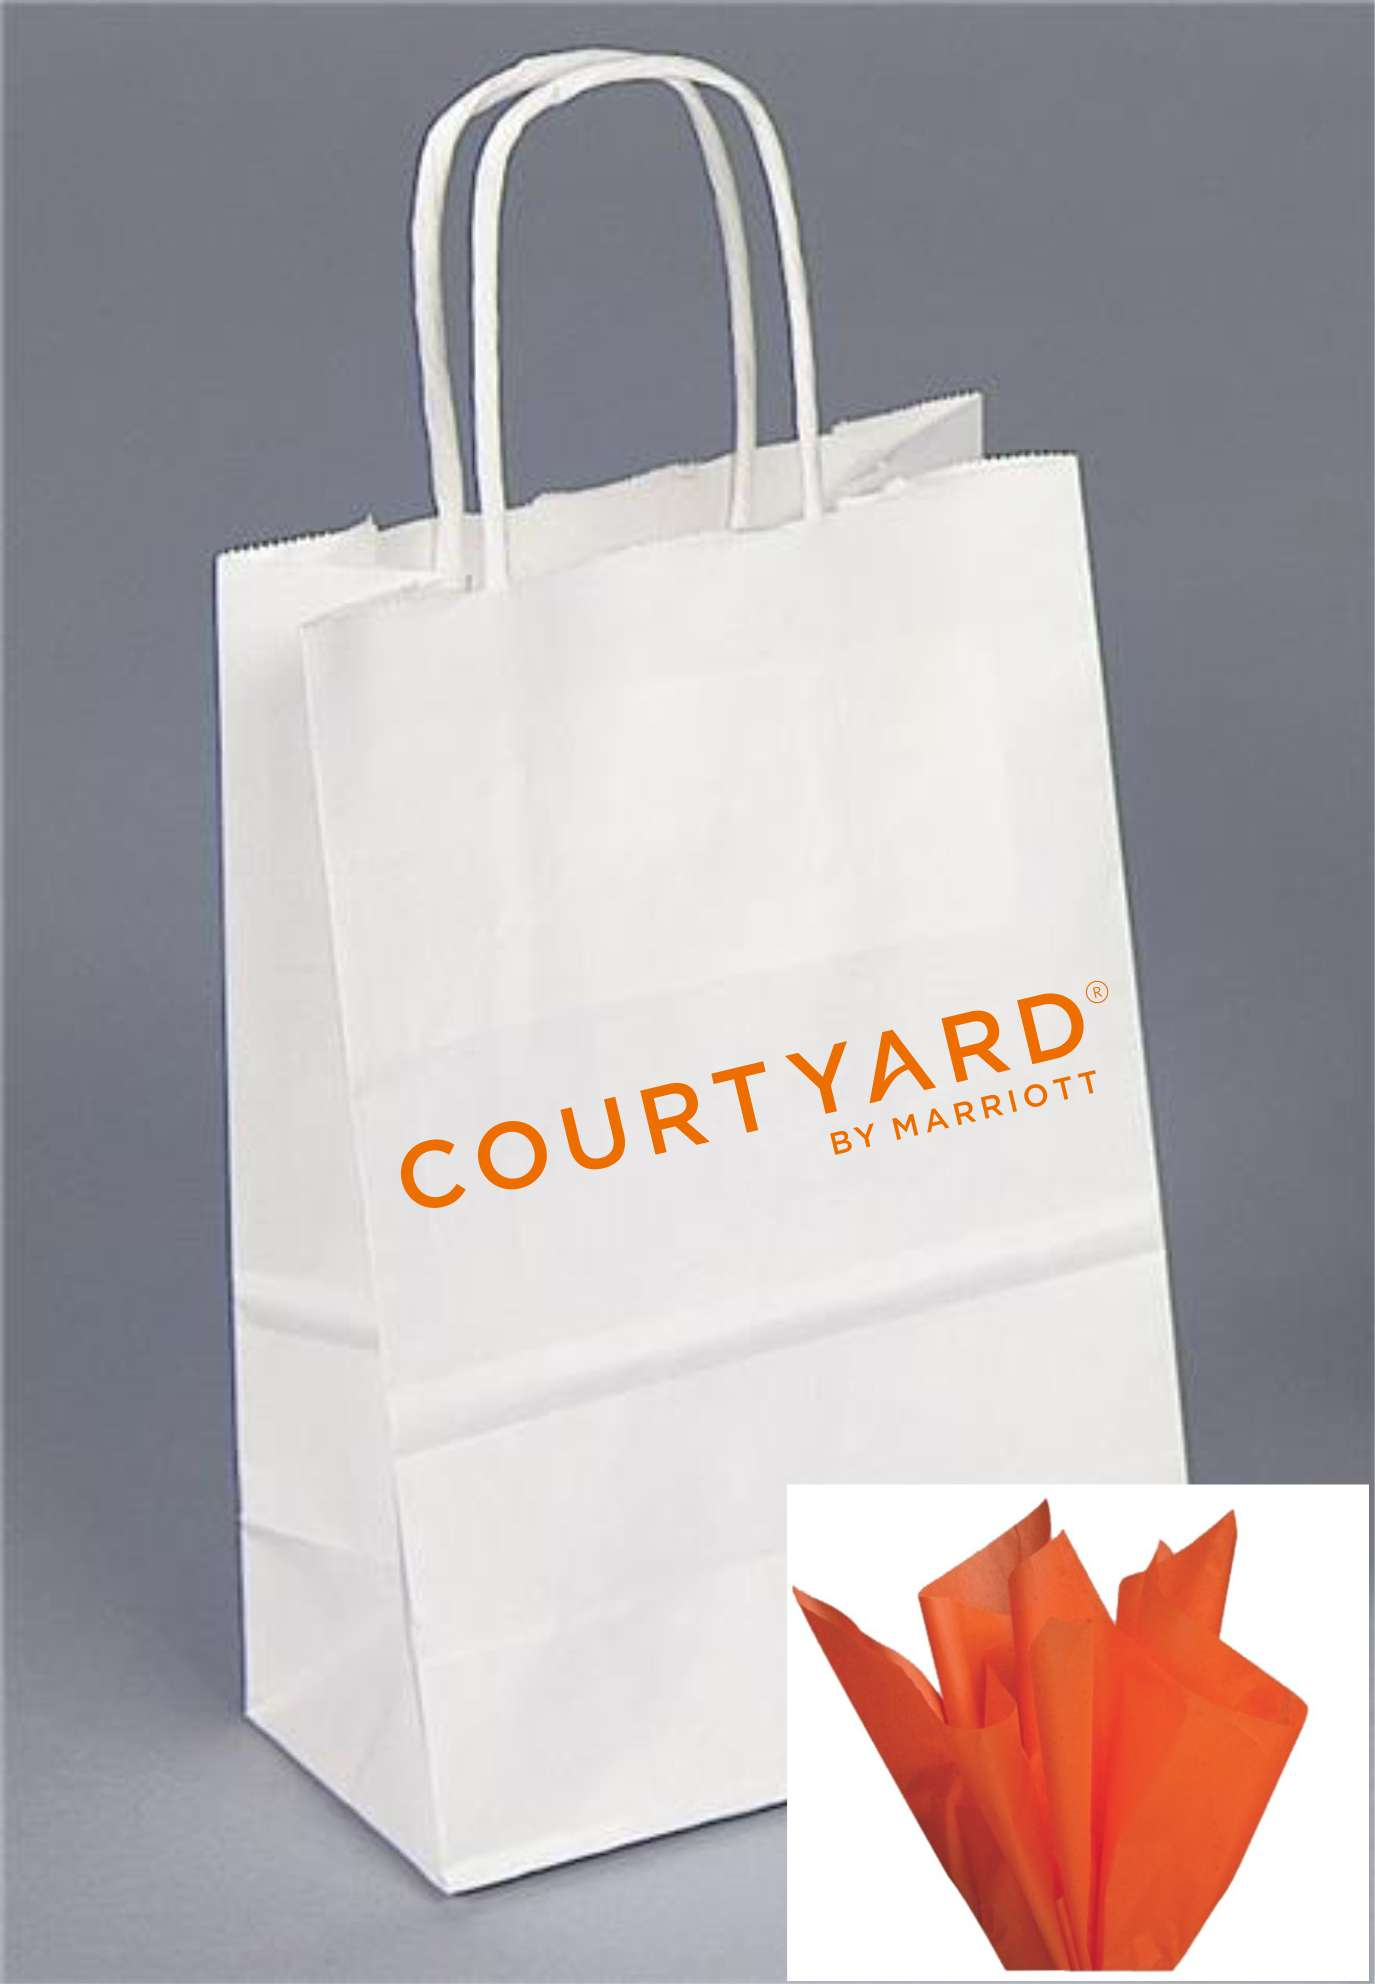 Gift Bags with Rope Handle - A Courtyard logo that really stands out from the crowd! - INCLUDES orange tissue paper with every gift bag!